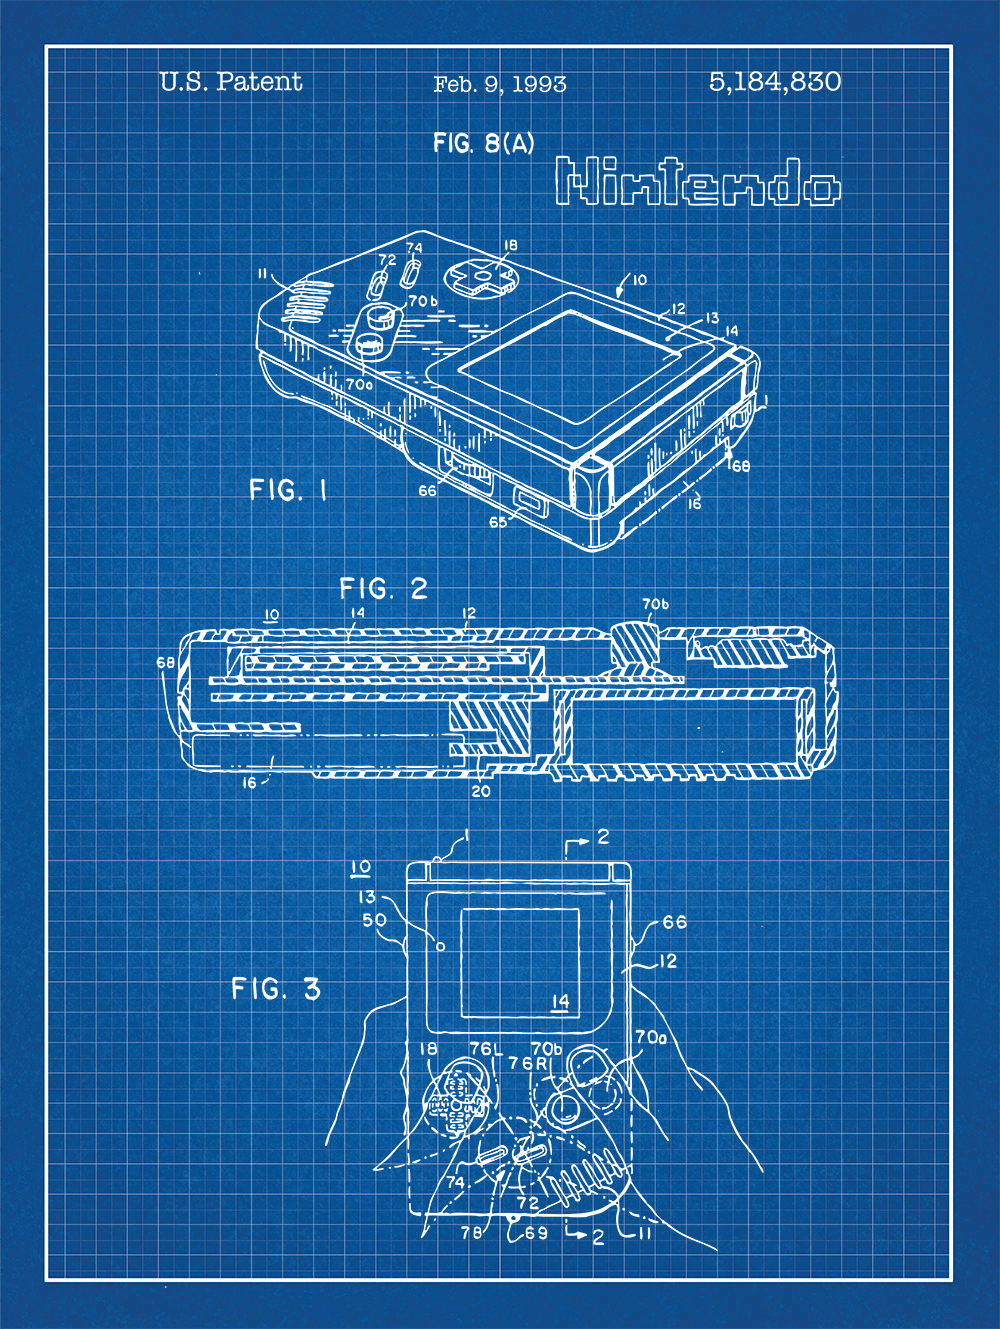 Nintendo game boy screen print handheld video game gameboy patent nintendo gameboy patent print on blue graph paper background malvernweather Images